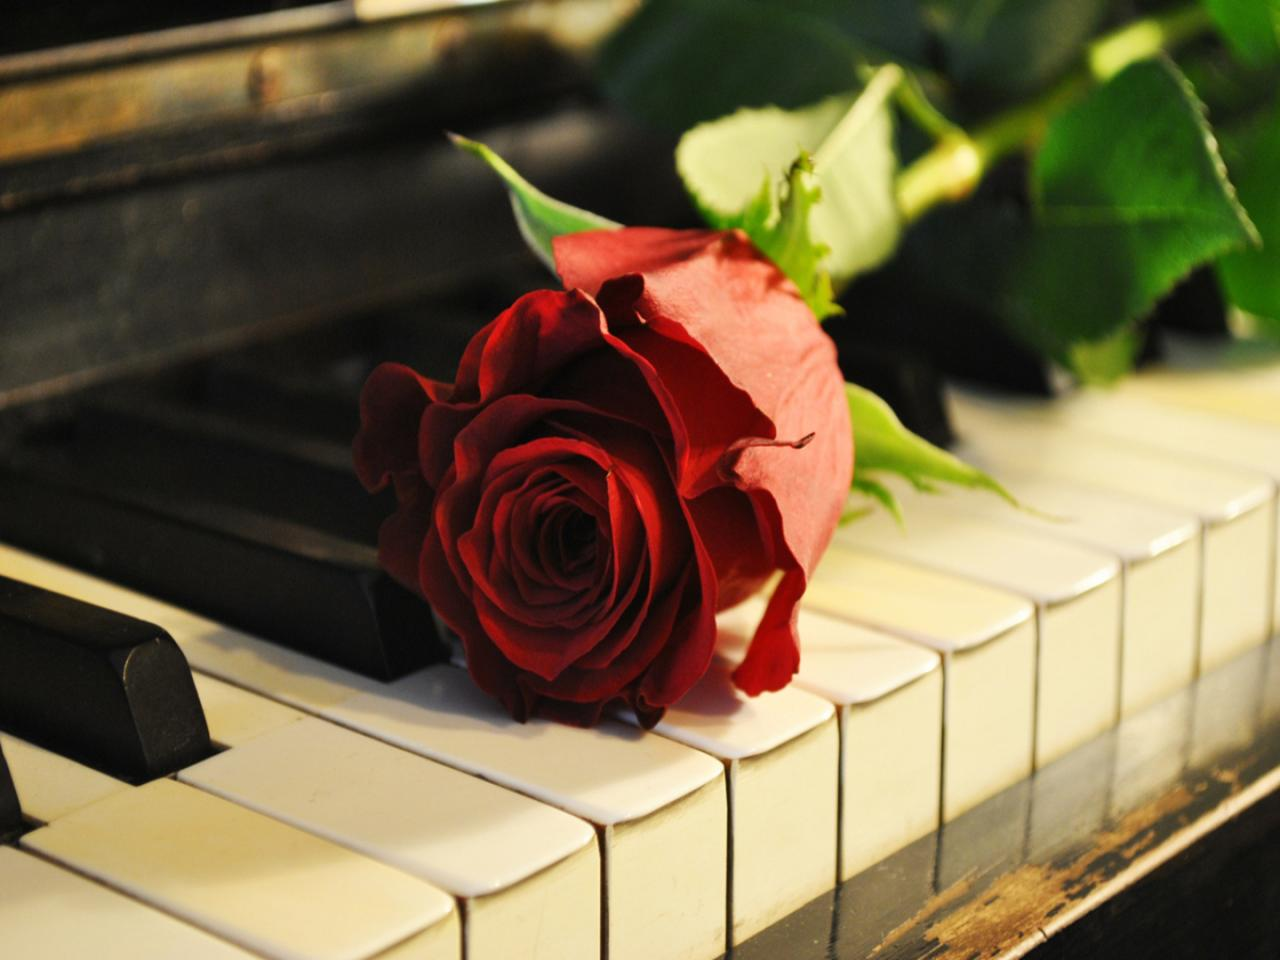 Vintage Rose Tumblr Charle rosePiano With Rose Photography